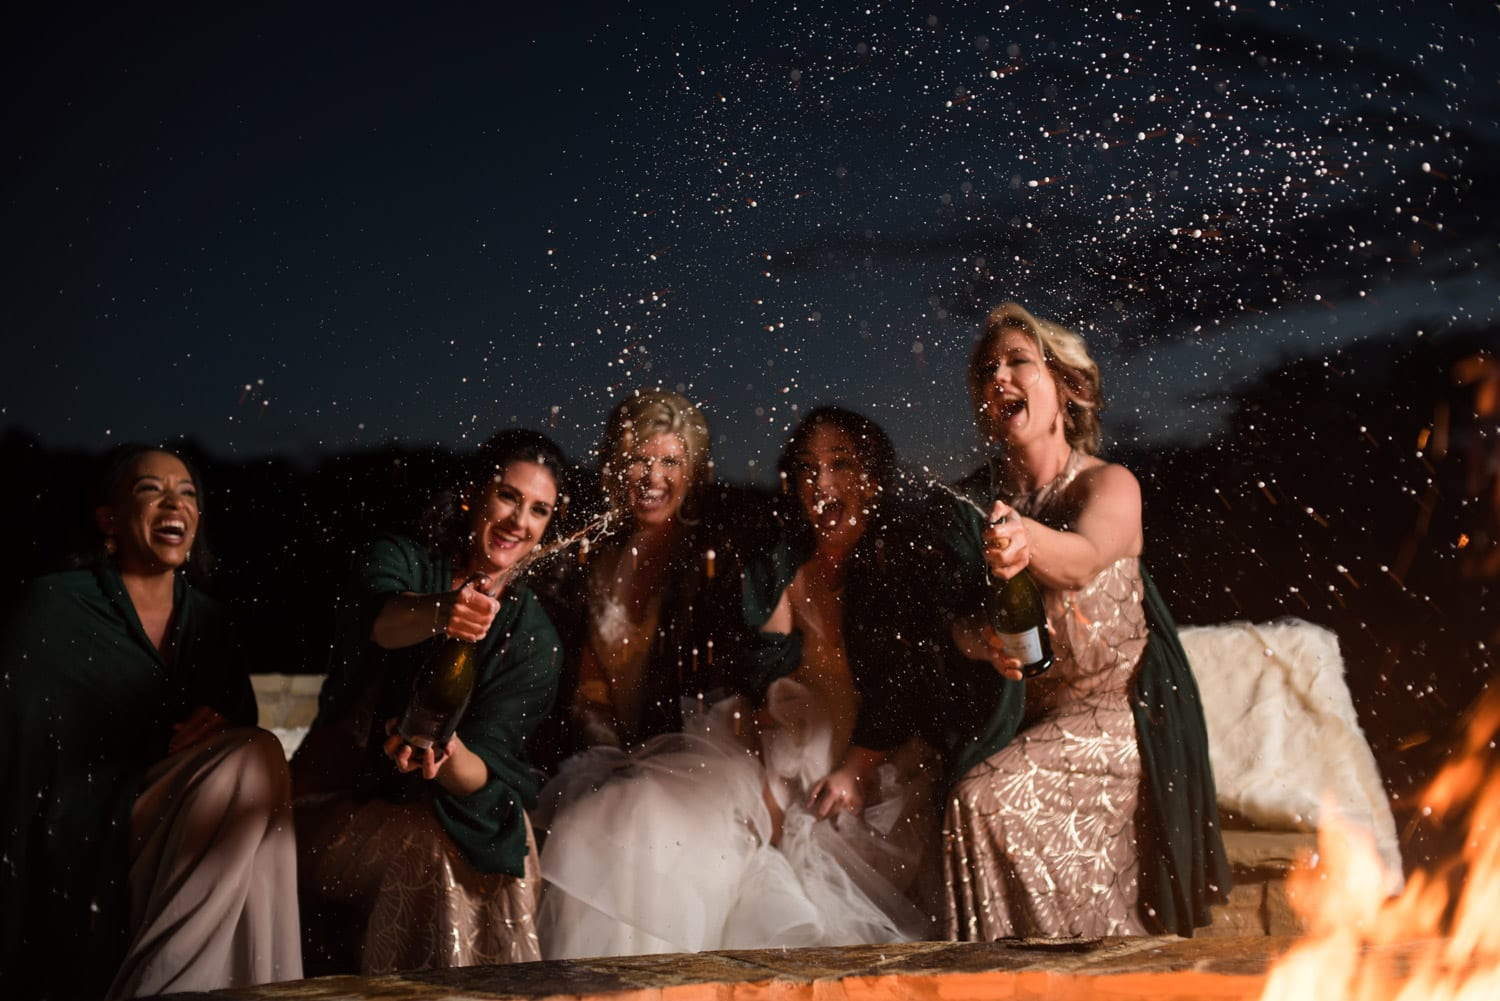 Bride and bridesmaids open champagne by the fire pit